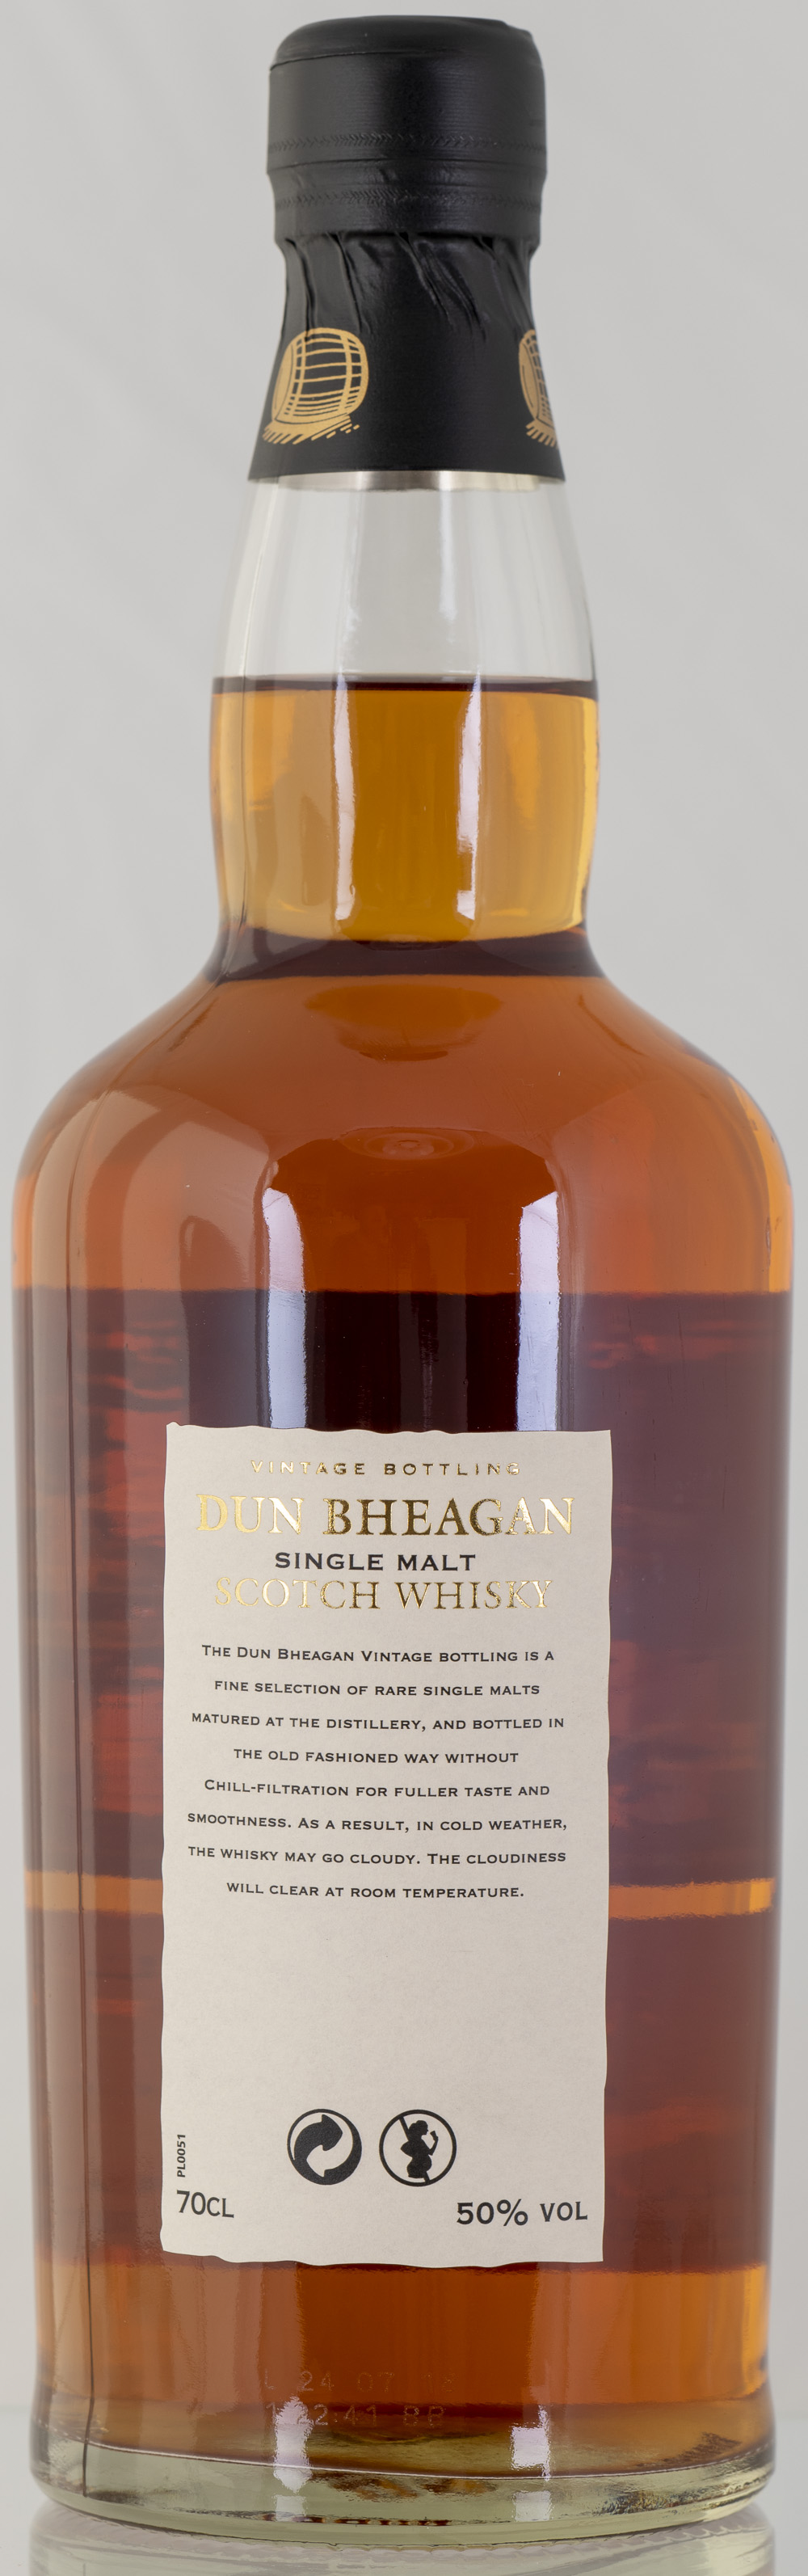 Billede: PHC_2203 - Dun Bheagan Braeval 19 - bottle back.jpg